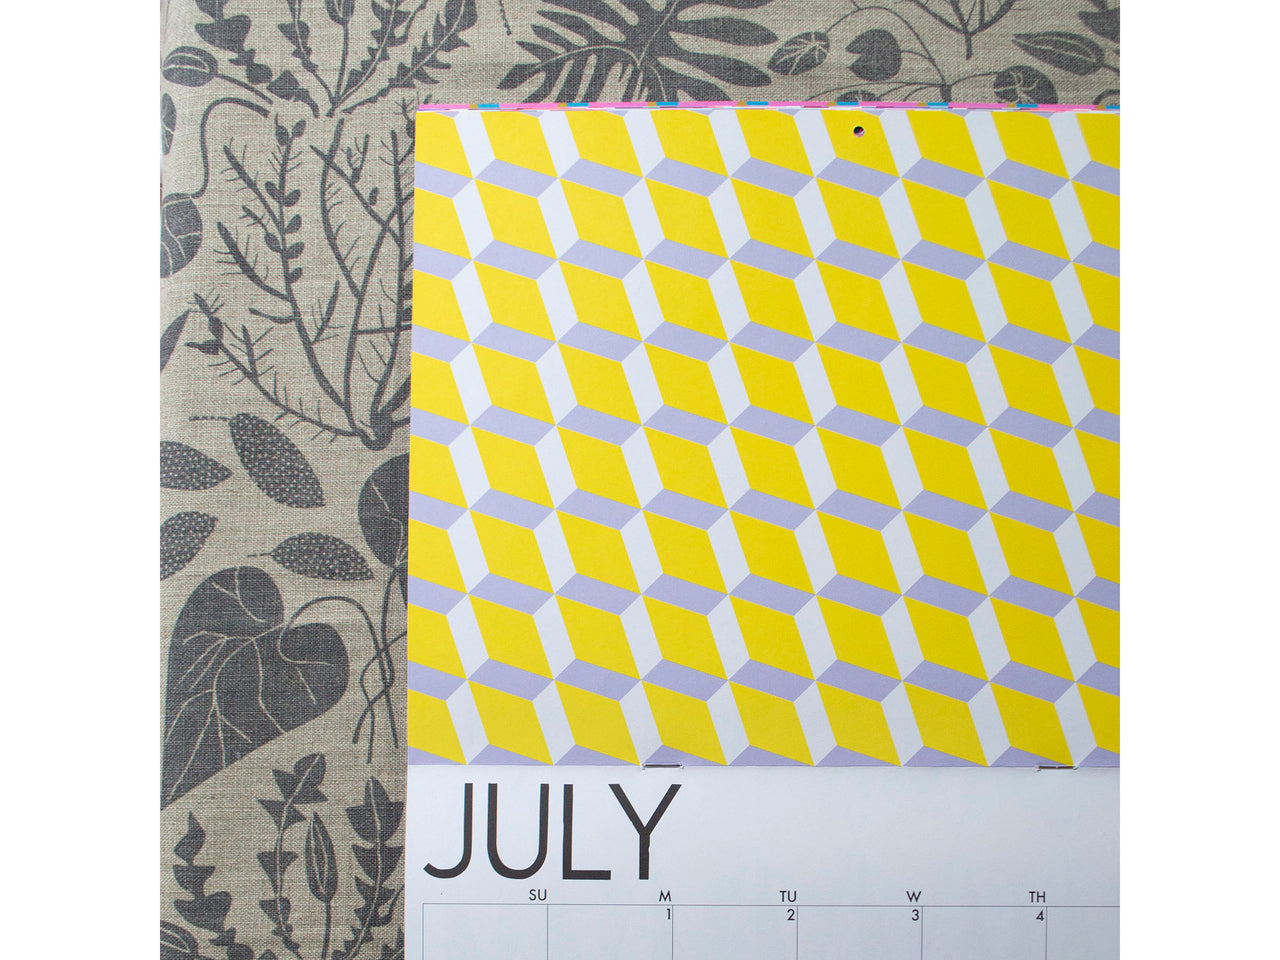 Yellow and Lavender geometric Image for the month of July in Banquet's 2019 Calendar